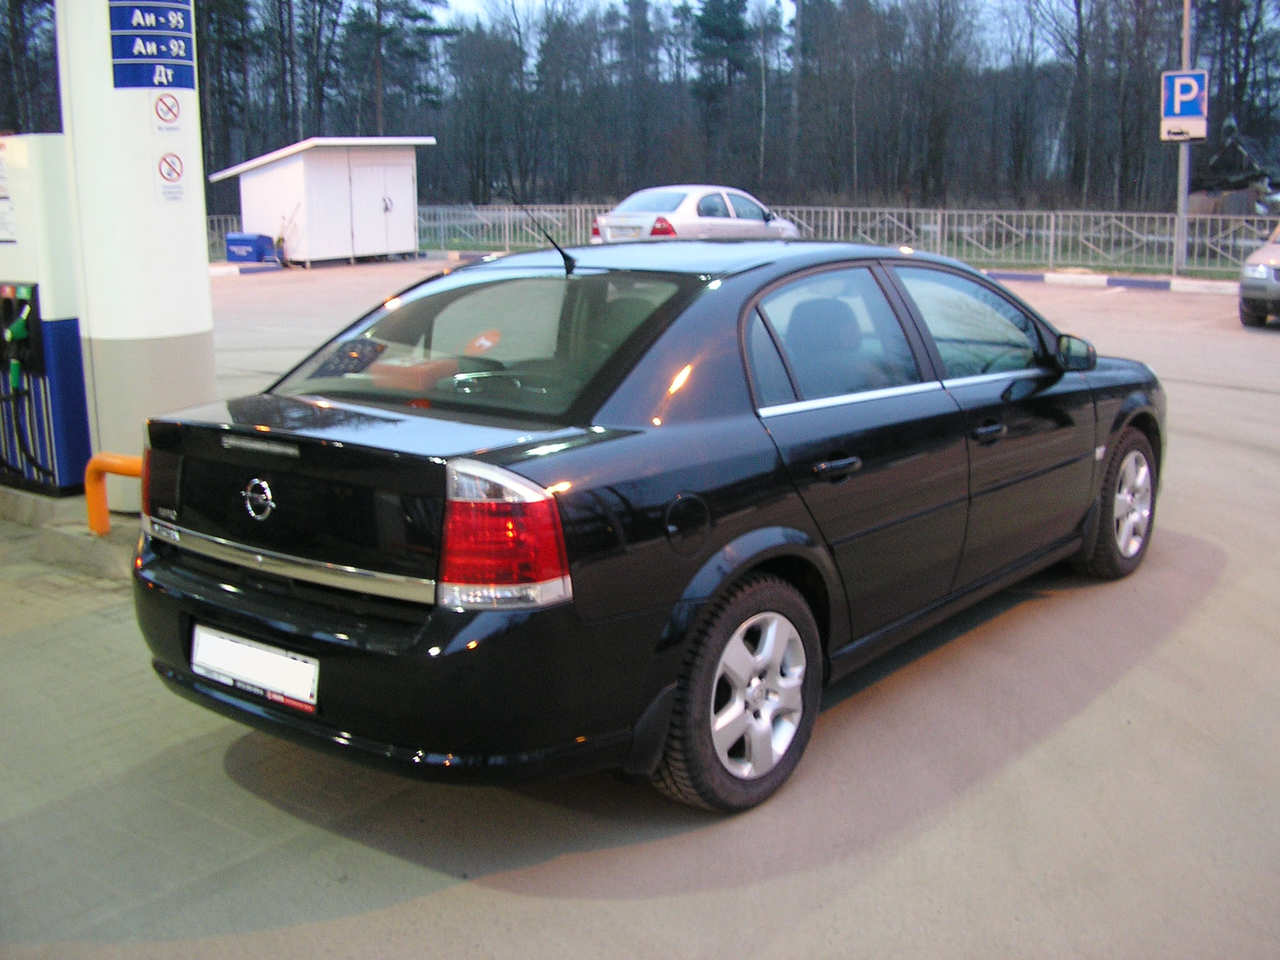 2008 Opel Vectra Photos 1 8 Gasoline Ff Manual For Sale